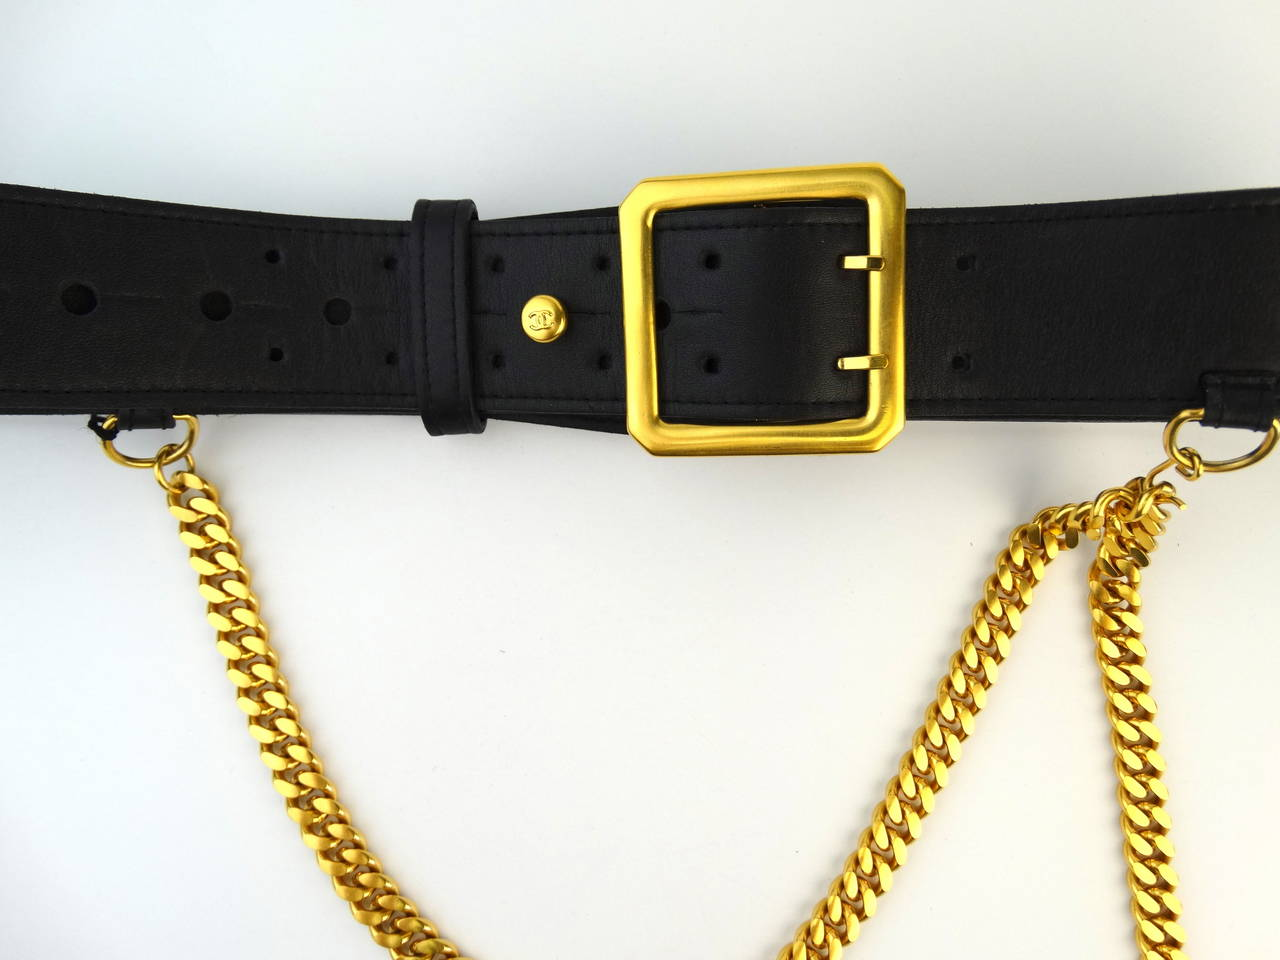 1996 Black Leather Chanel Belt with Gold Chain 3